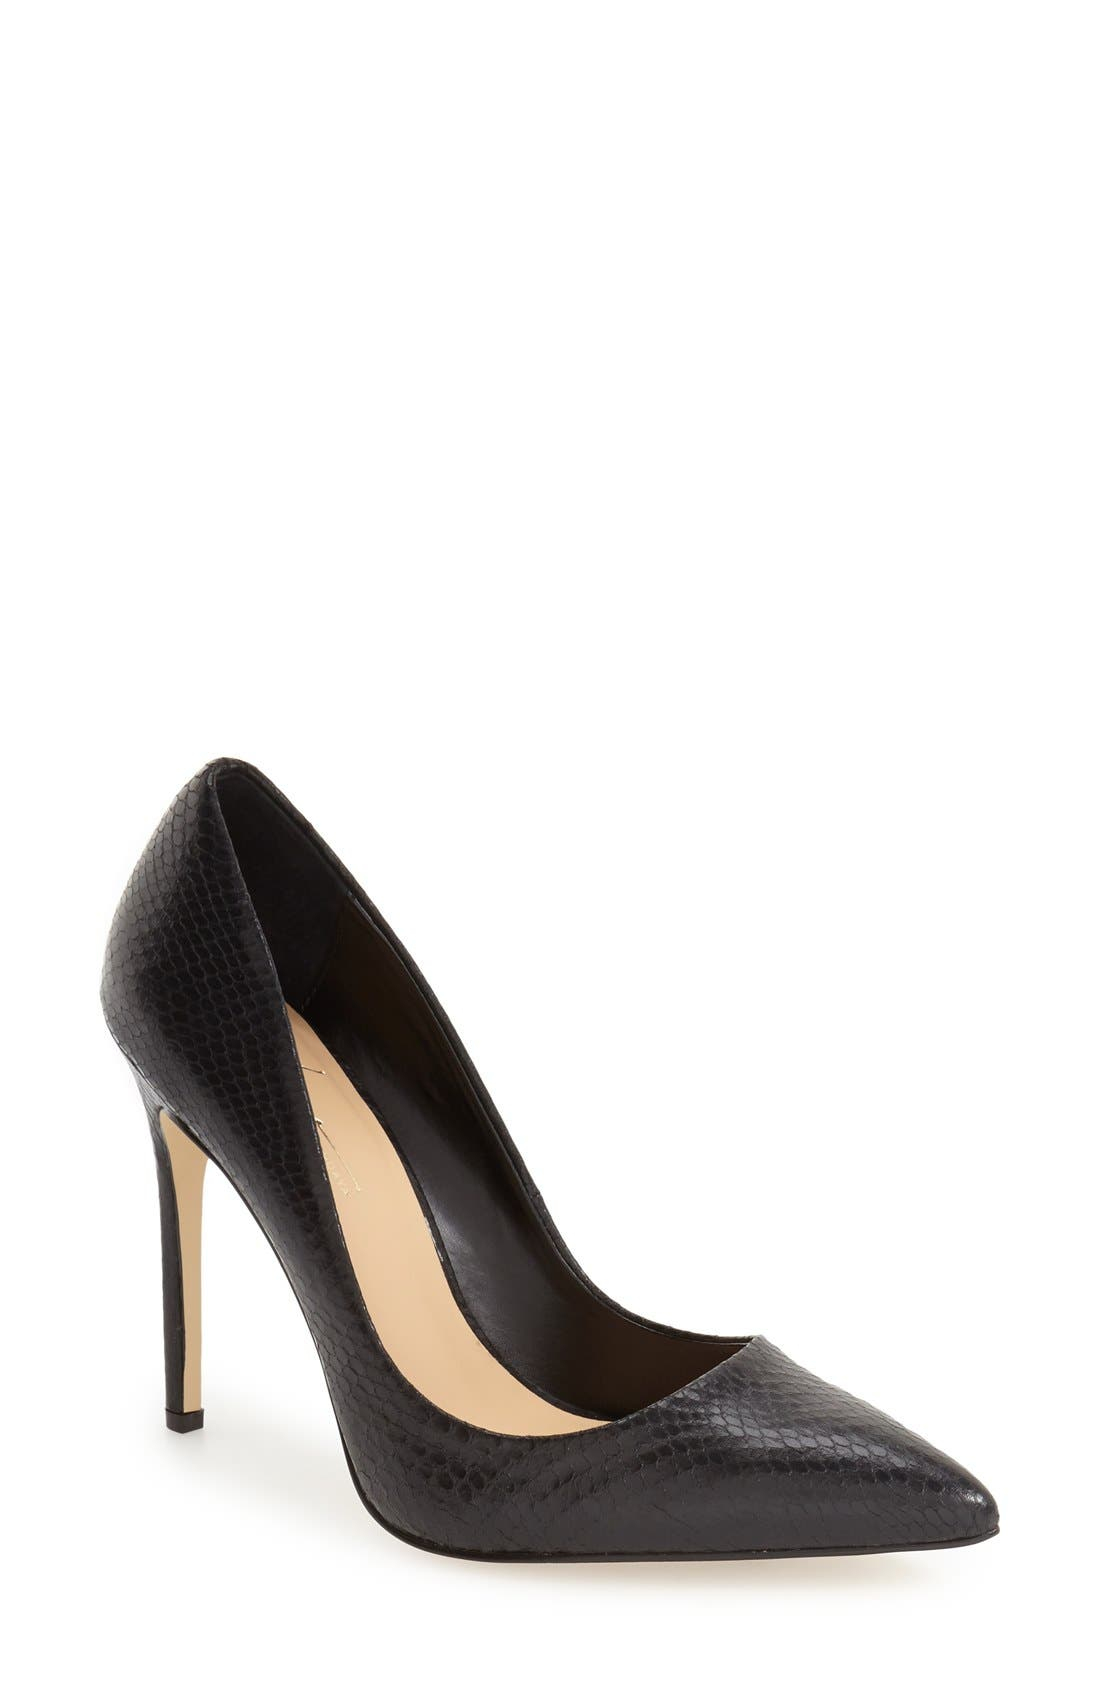 DAYA by Zendaya 'Atmore' Pump, Main, color, 019